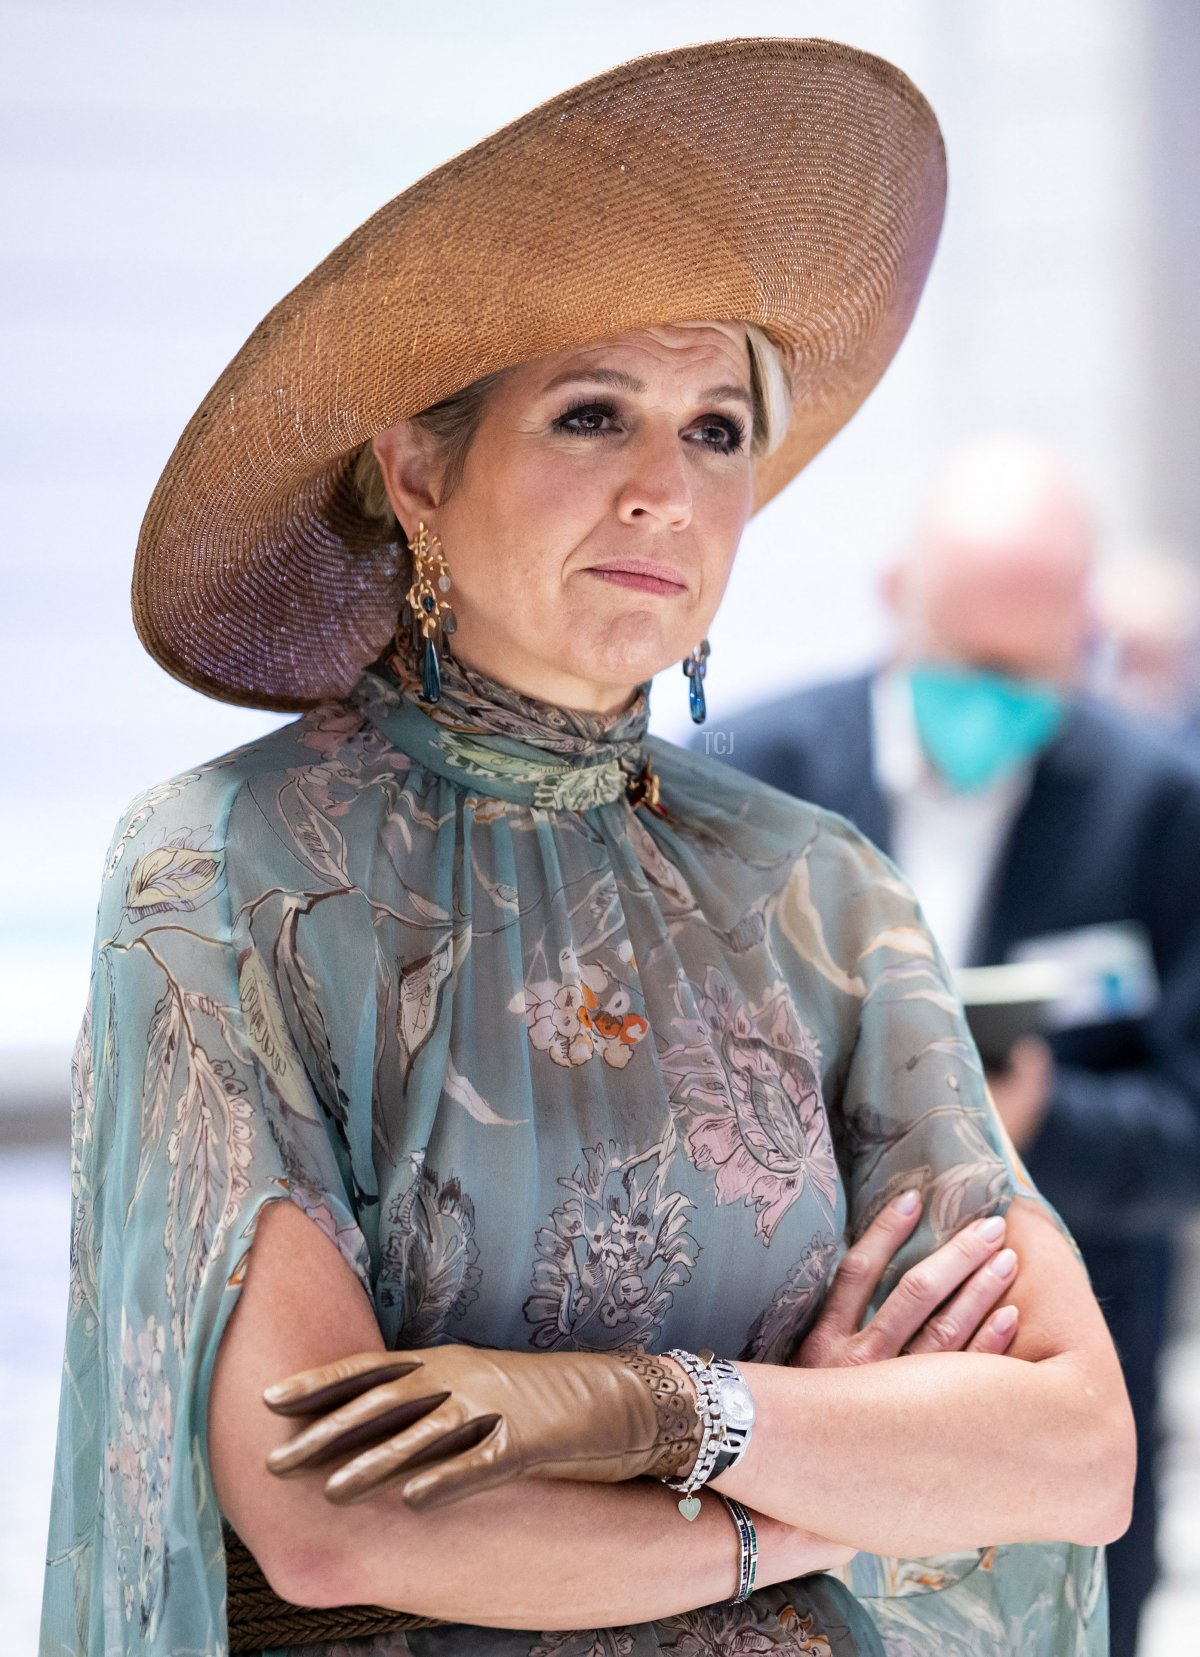 Queen Maxima of the Netherlands (L) is pictured during the Dutch royal couple's visit at the Technical University (TU) of Berlin to learn about key technologies from photonics and quantum research, in Berlin on July 7, 2021